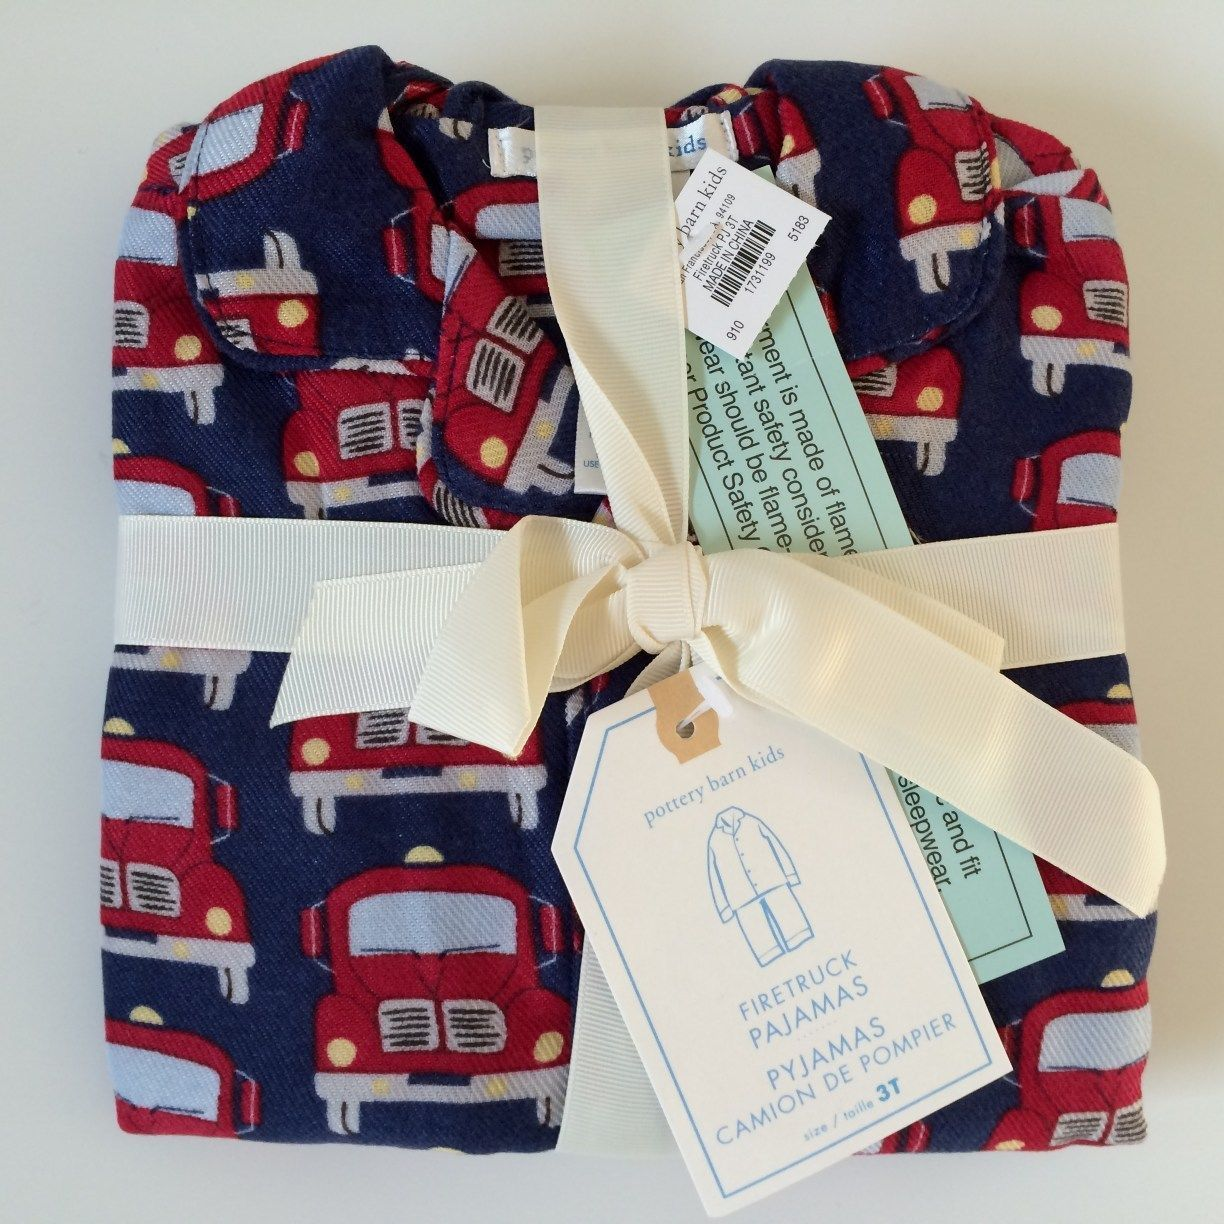 Pottery Barn Kids Fire Truck Flannel Pajamas Size 3T New